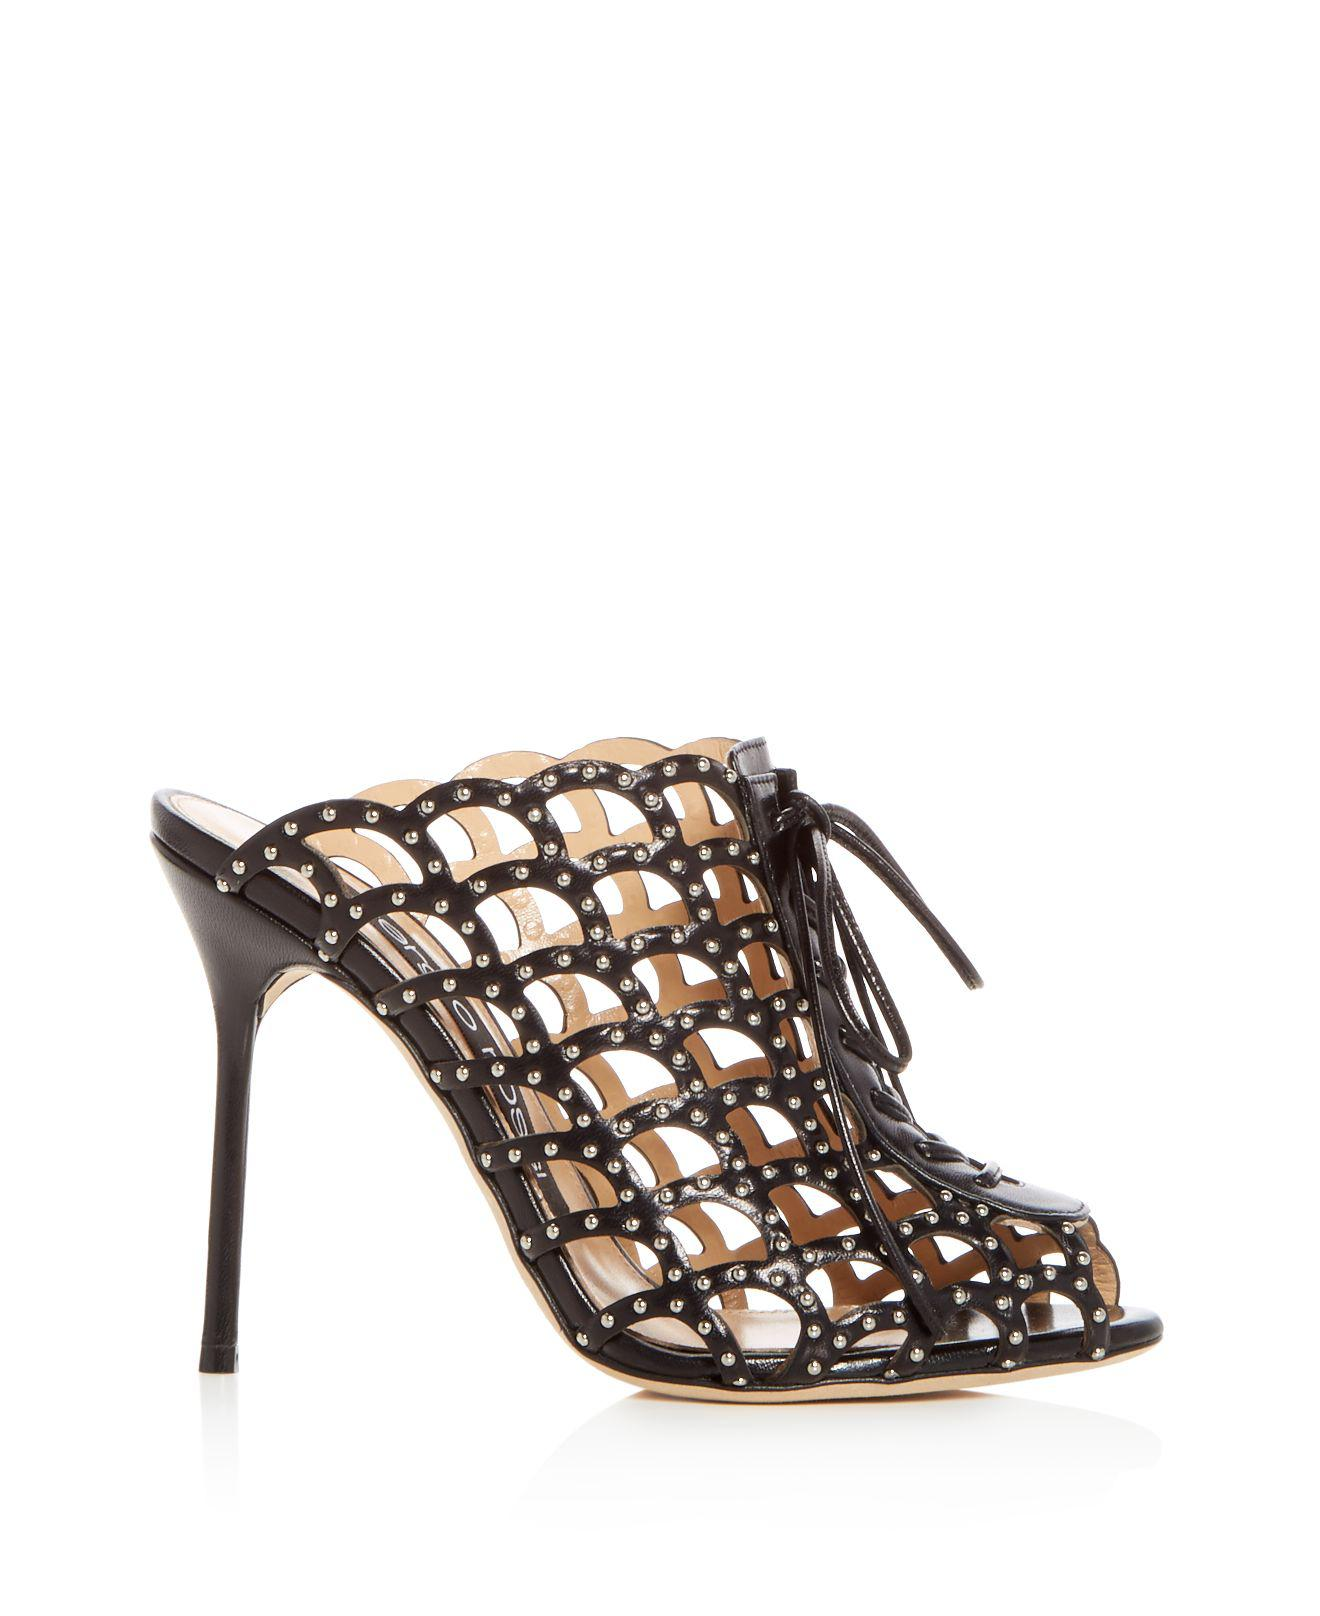 footlocker pictures sale online Sergio Rossi Crossover Caged Sandals release dates for sale free shipping brand new unisex 2LfKXLQbe